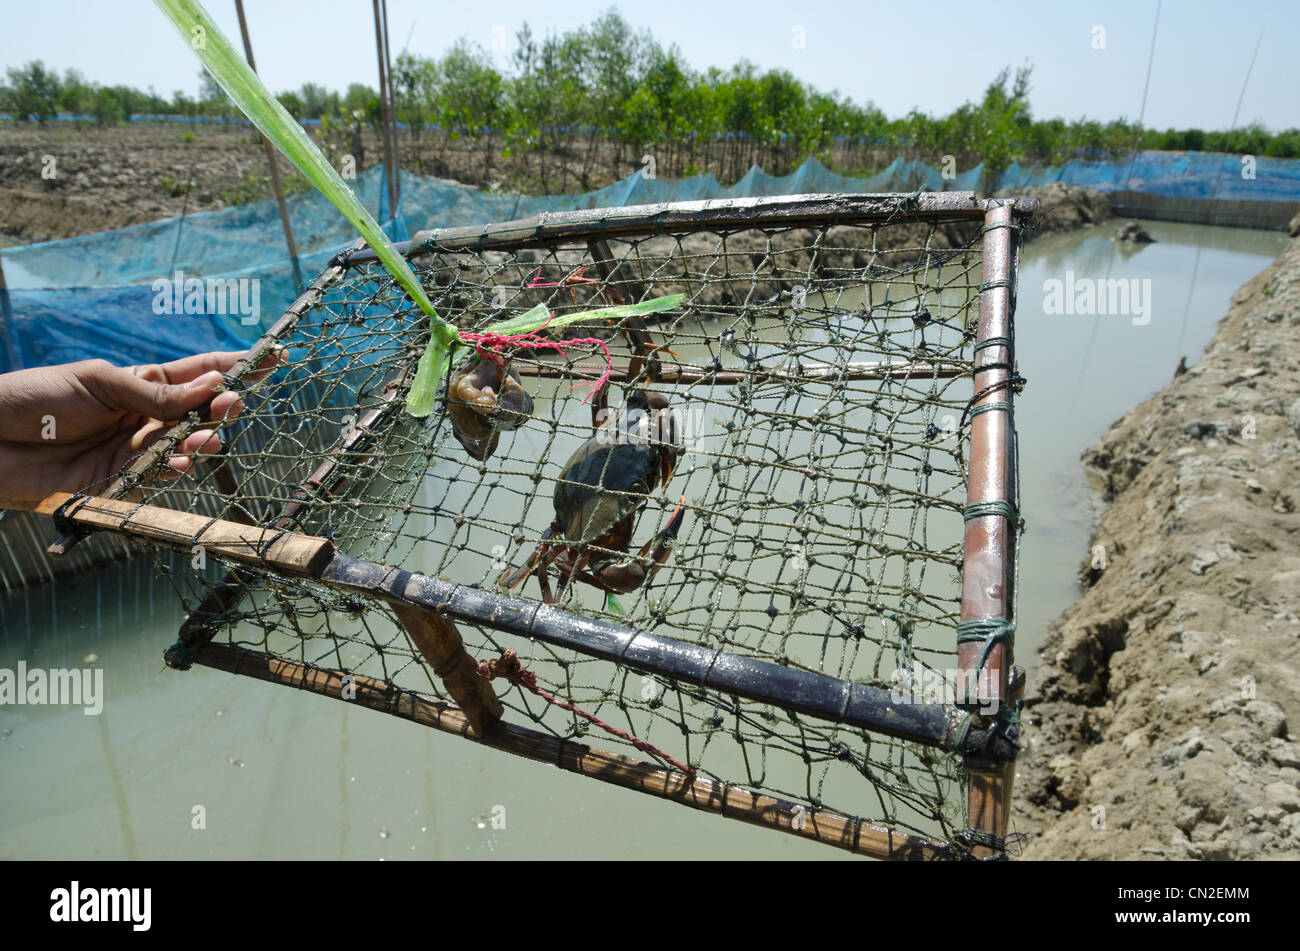 Crab fattening pool and Mangrove replanting project. NGO donors trip ADRA-LIFT-ECODEV. Irrawaddy delta. Myanmar. - Stock Image